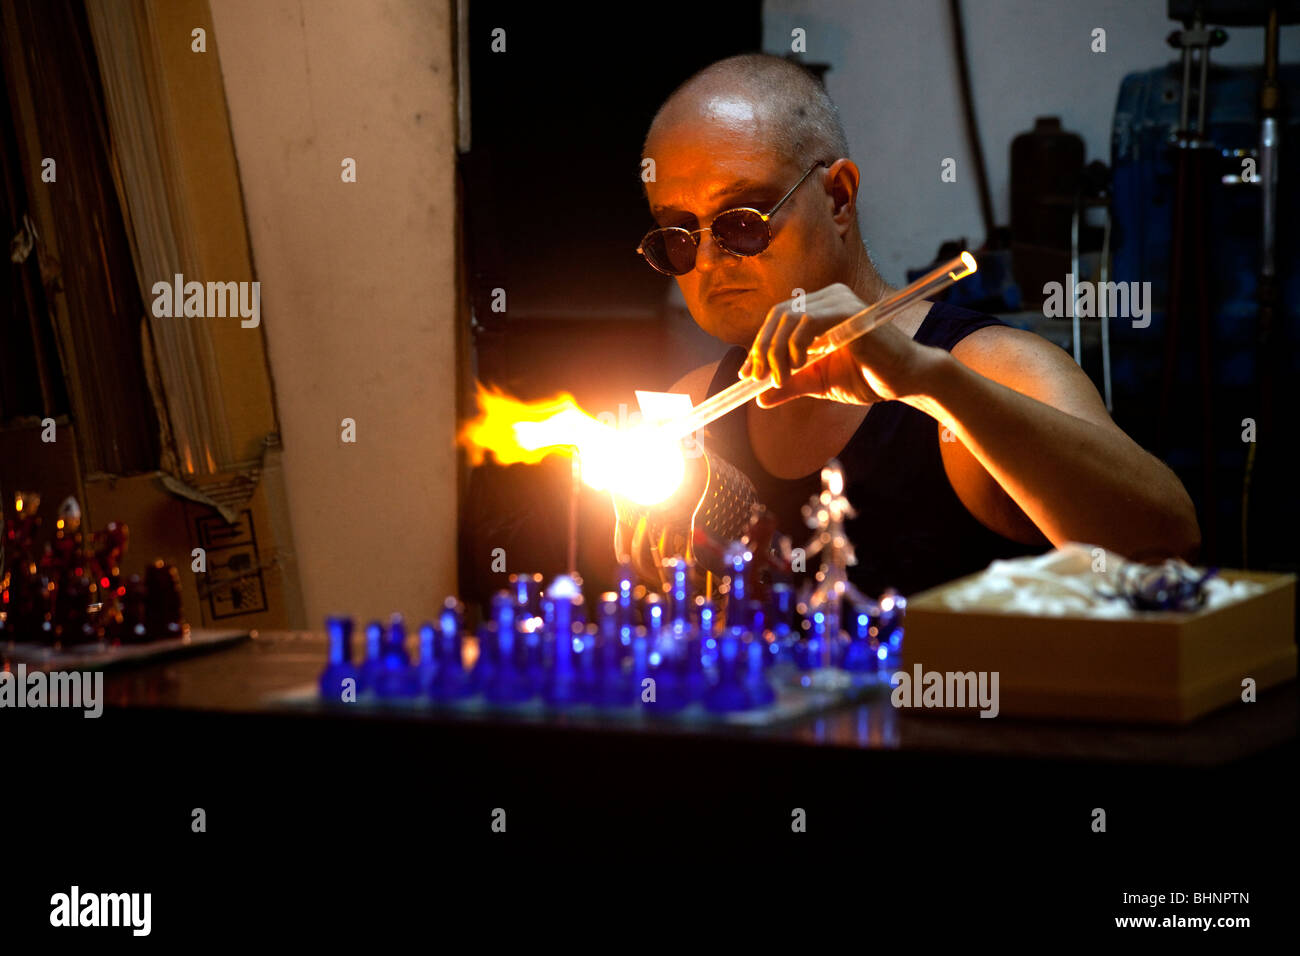 A craftsman in Mdina in Malta works on a glass chess set - Stock Image